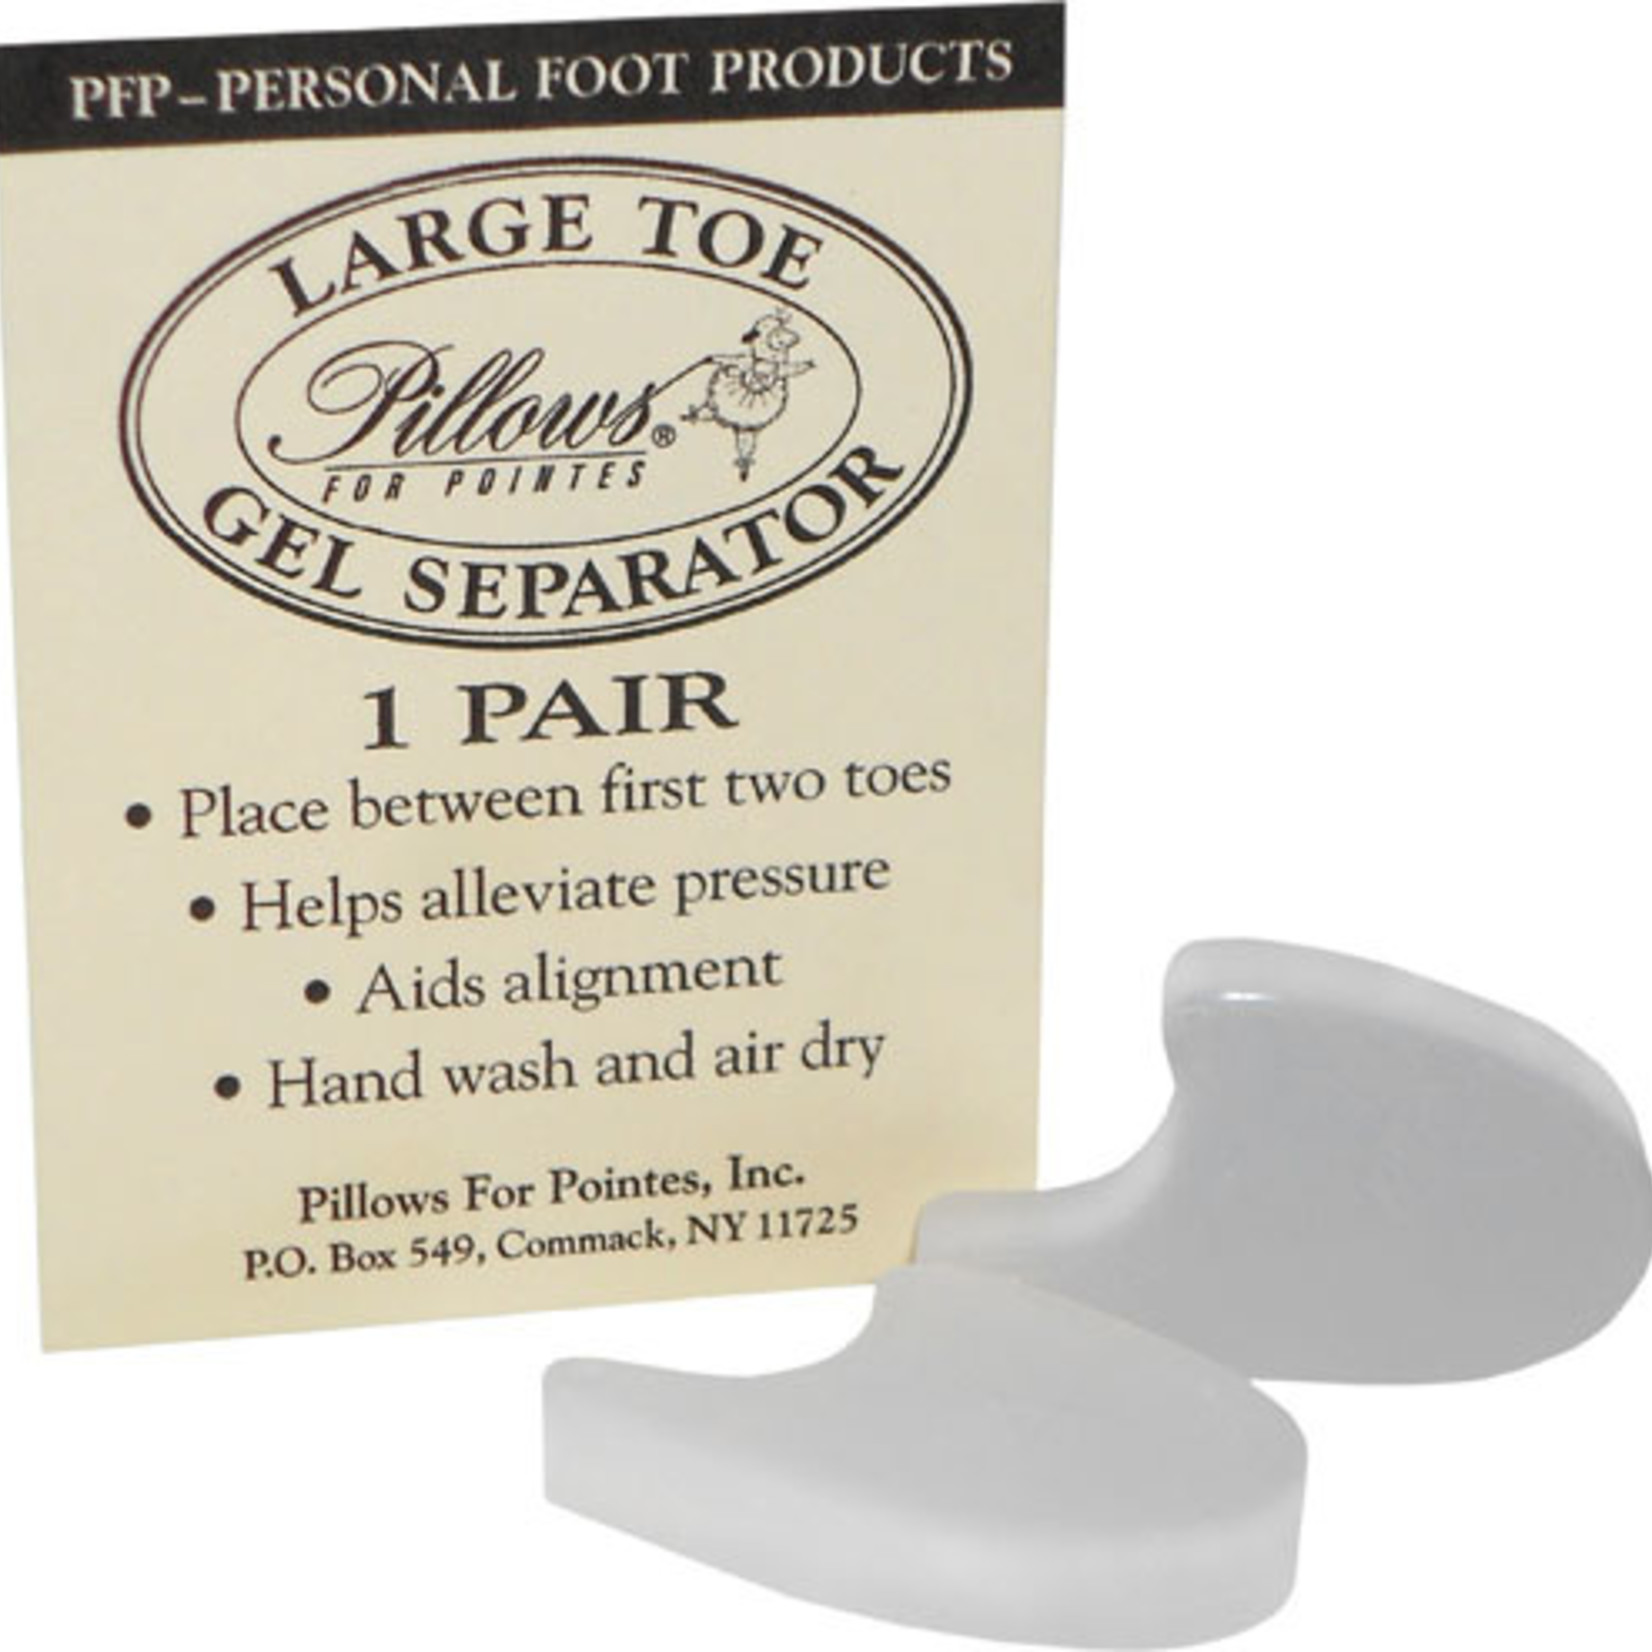 Pillows for Pointes Pillows for Pointes Large Gel Toe Separator